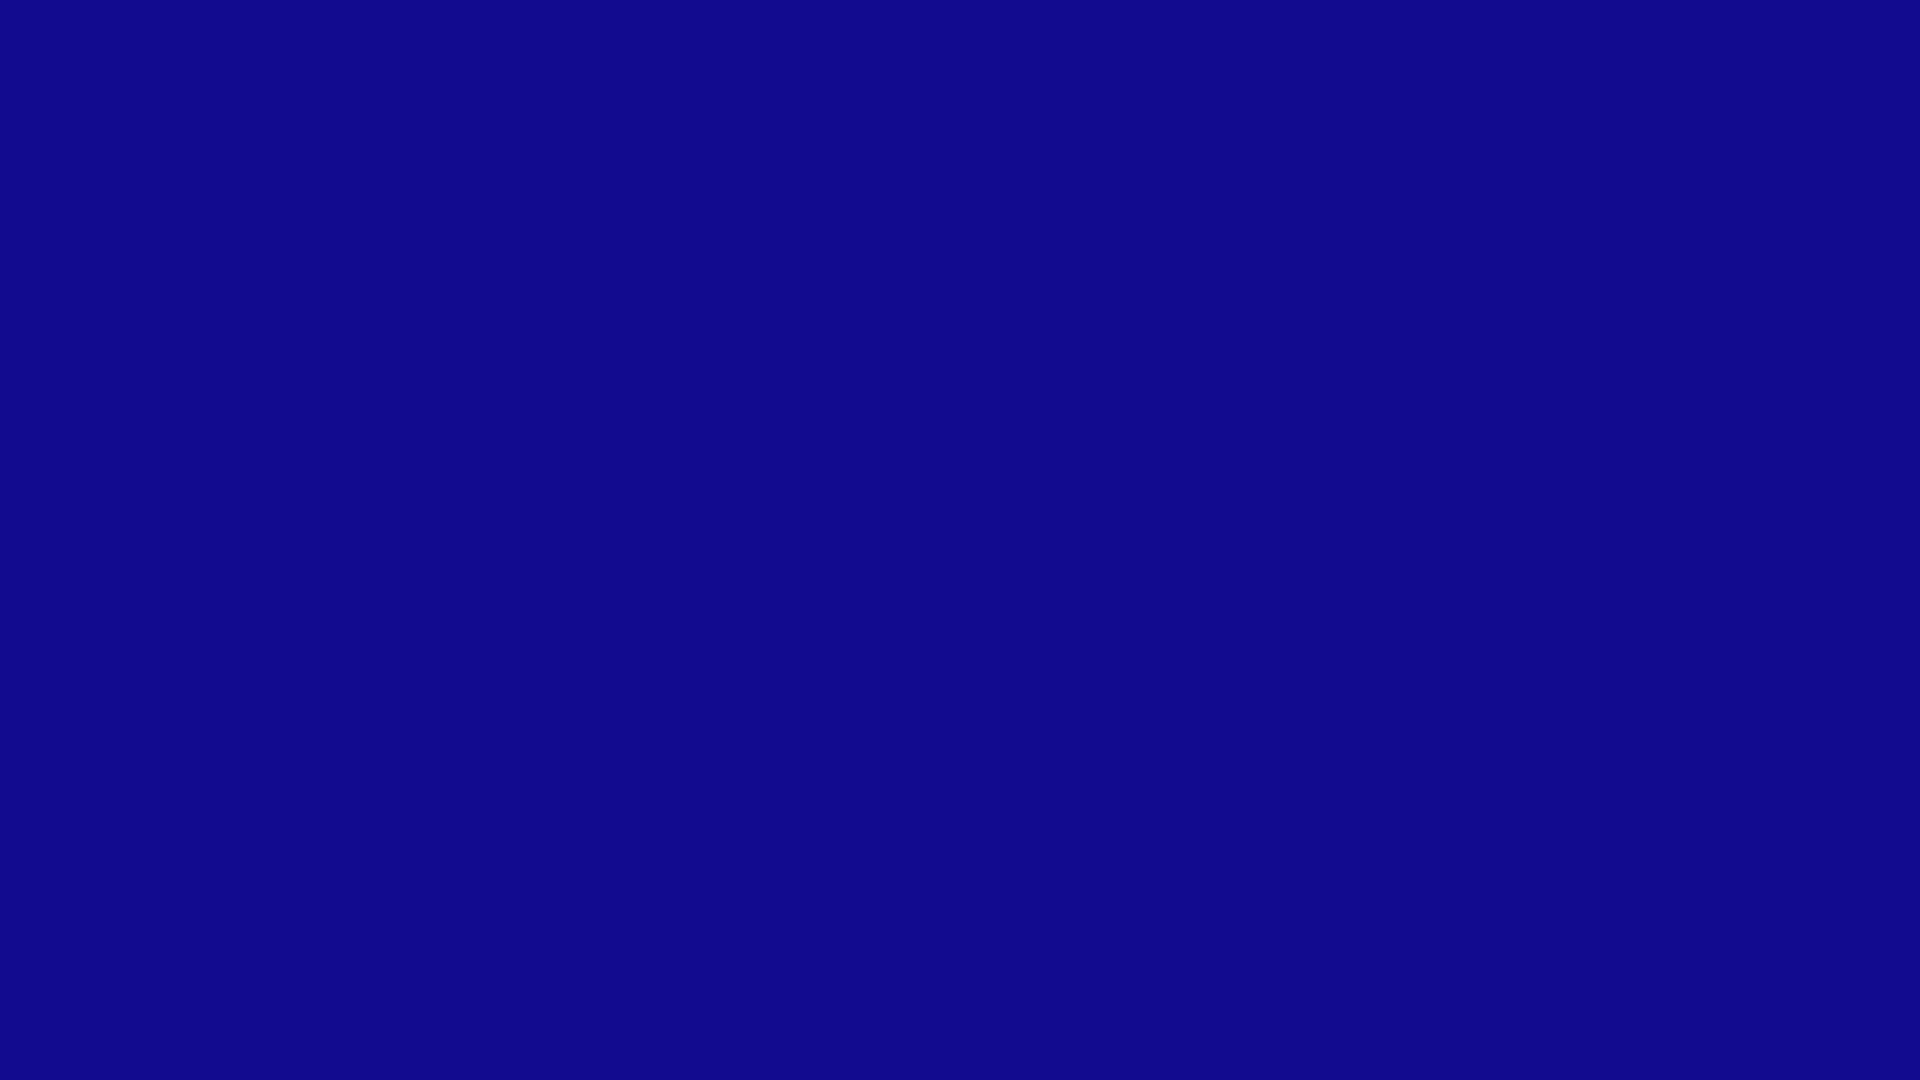 1920x1080 Ultramarine Solid Color Background 1920x1080